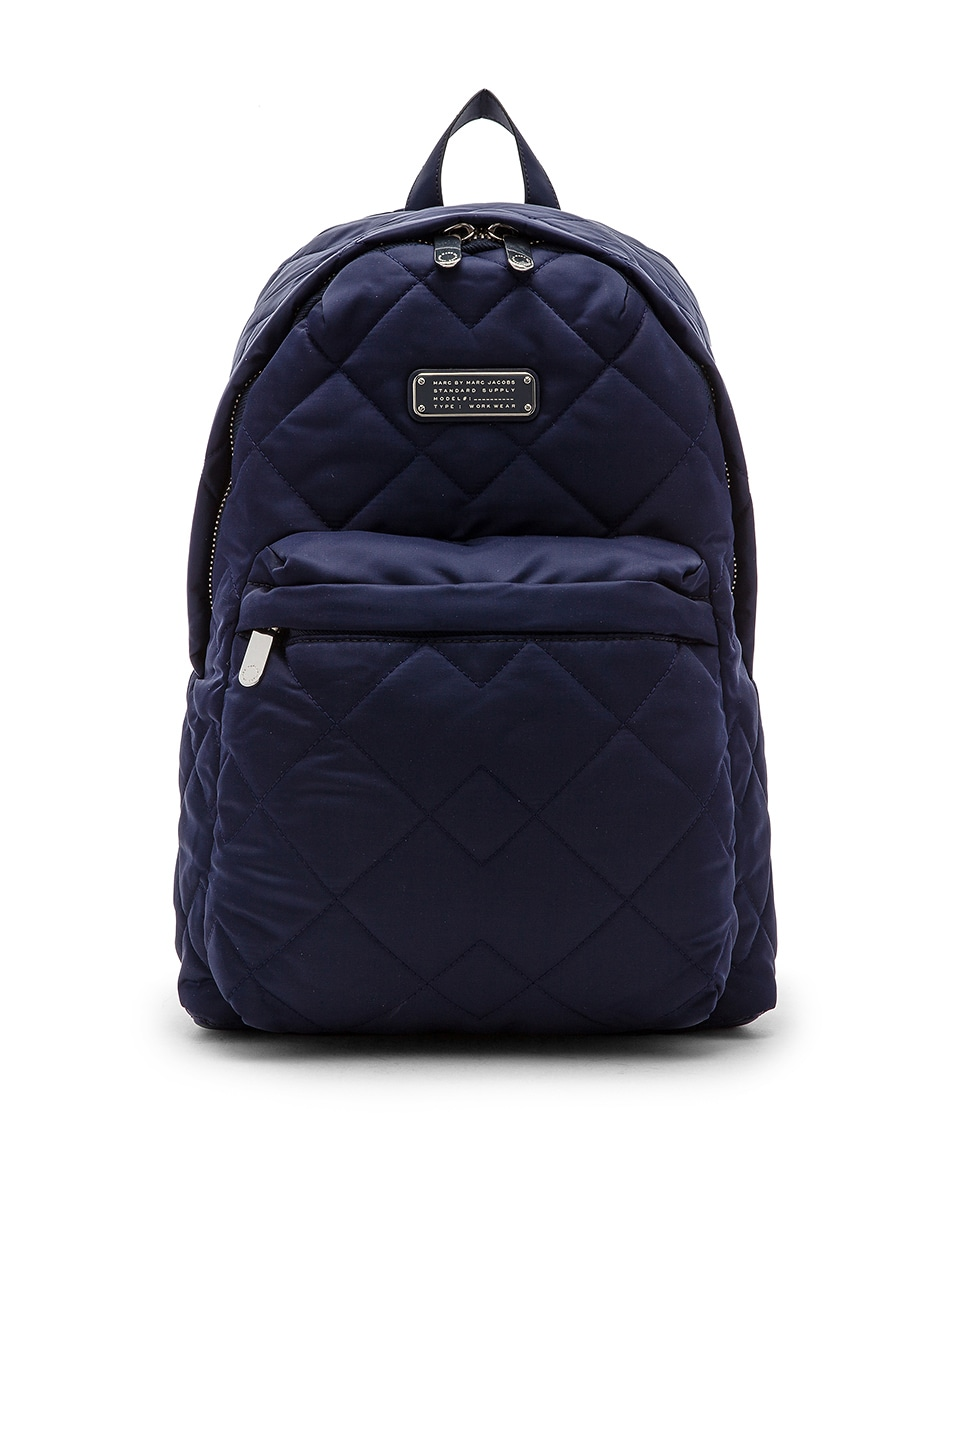 034850fb20930 Marc by Marc Jacobs Crosby Quilt Nylon Backpack in India Ink